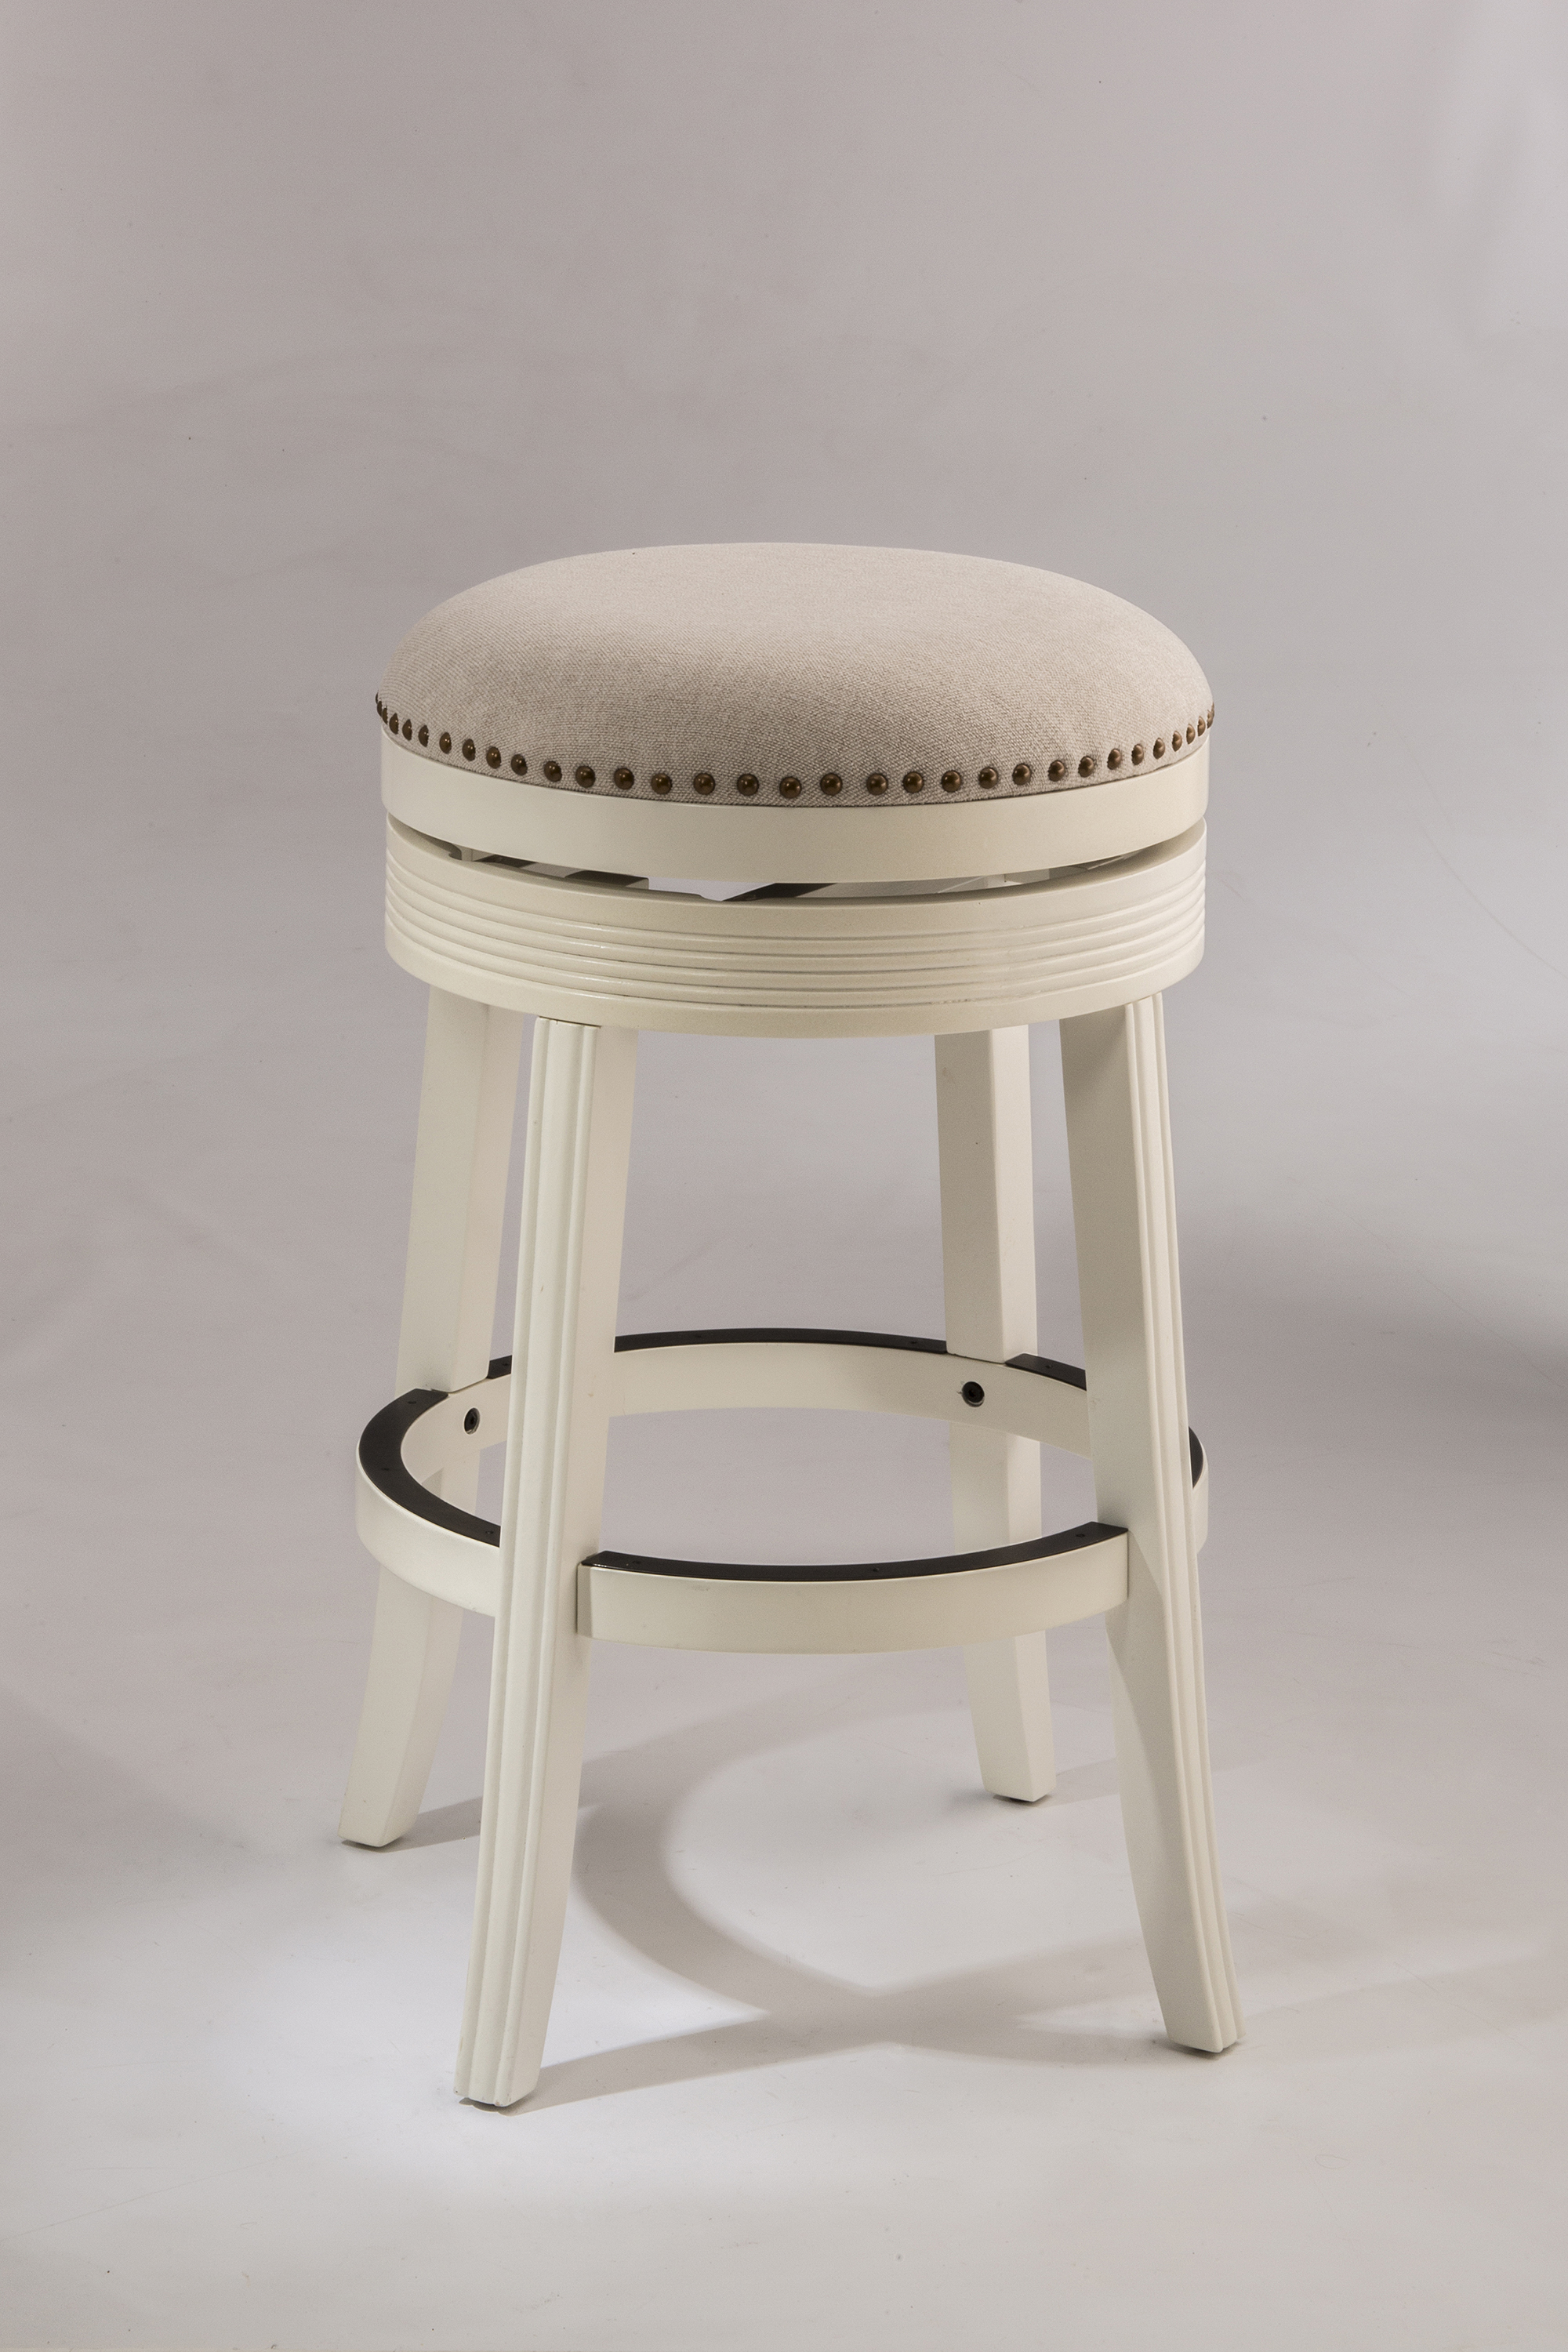 Hillsdale Backless Bar Stools 5688 830a White Backless